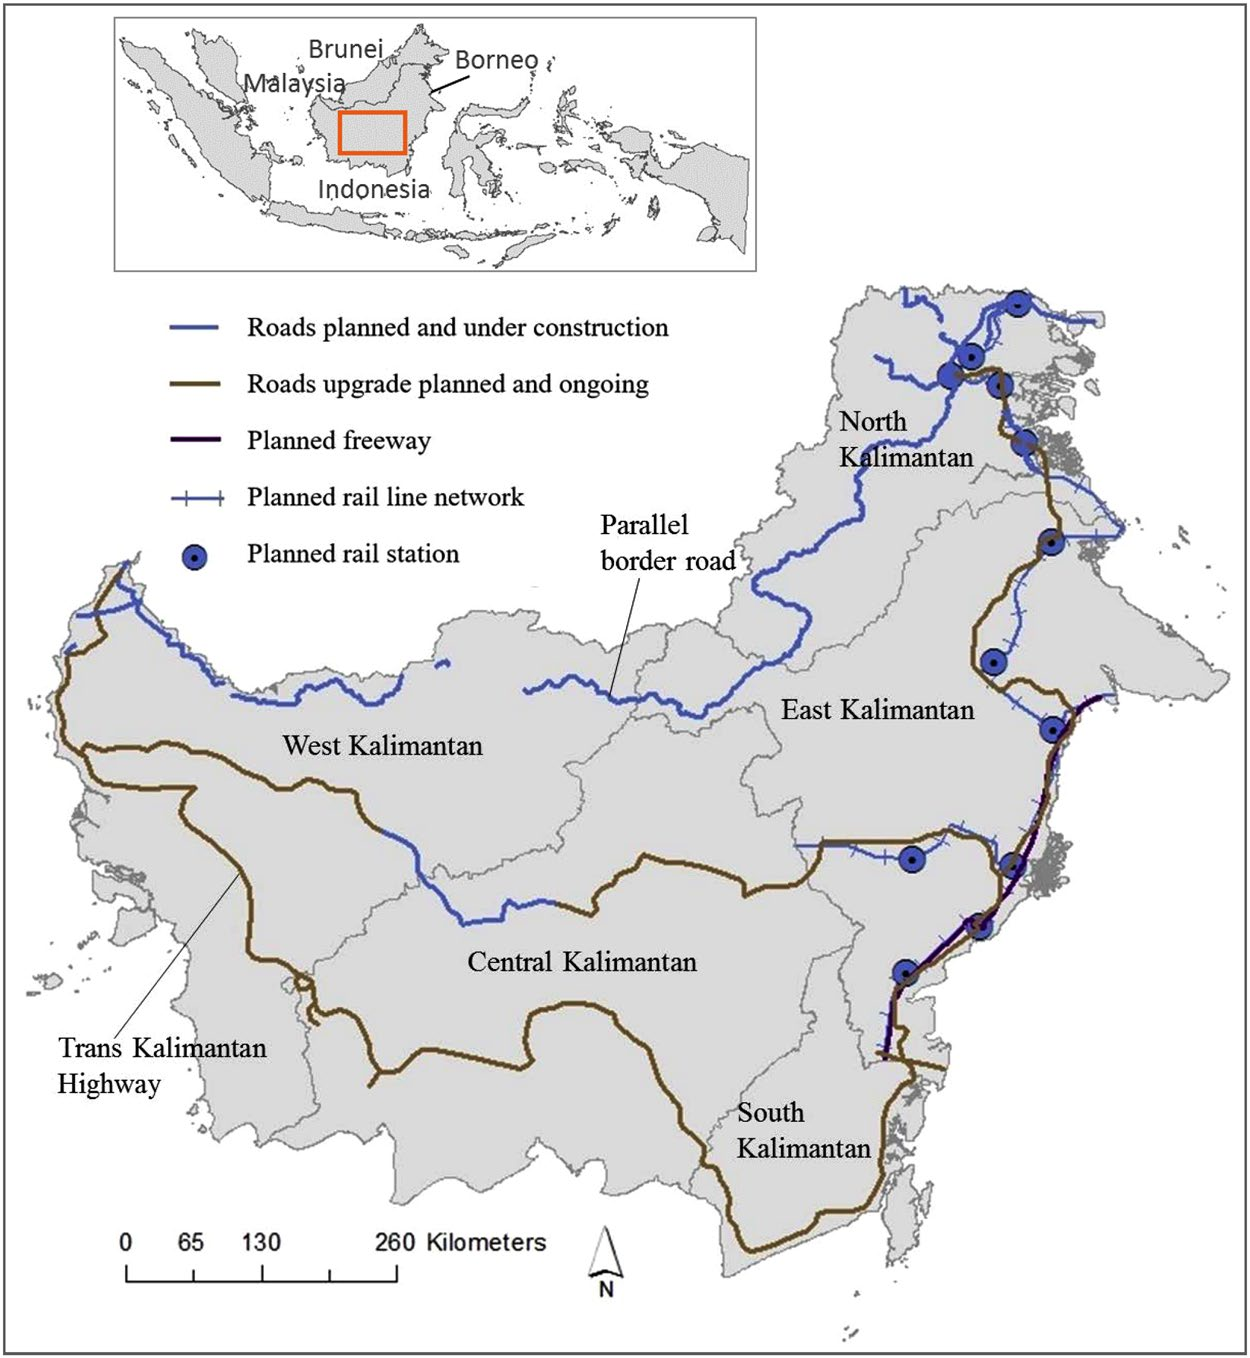 Kalimantan-road & rail projects.jpg